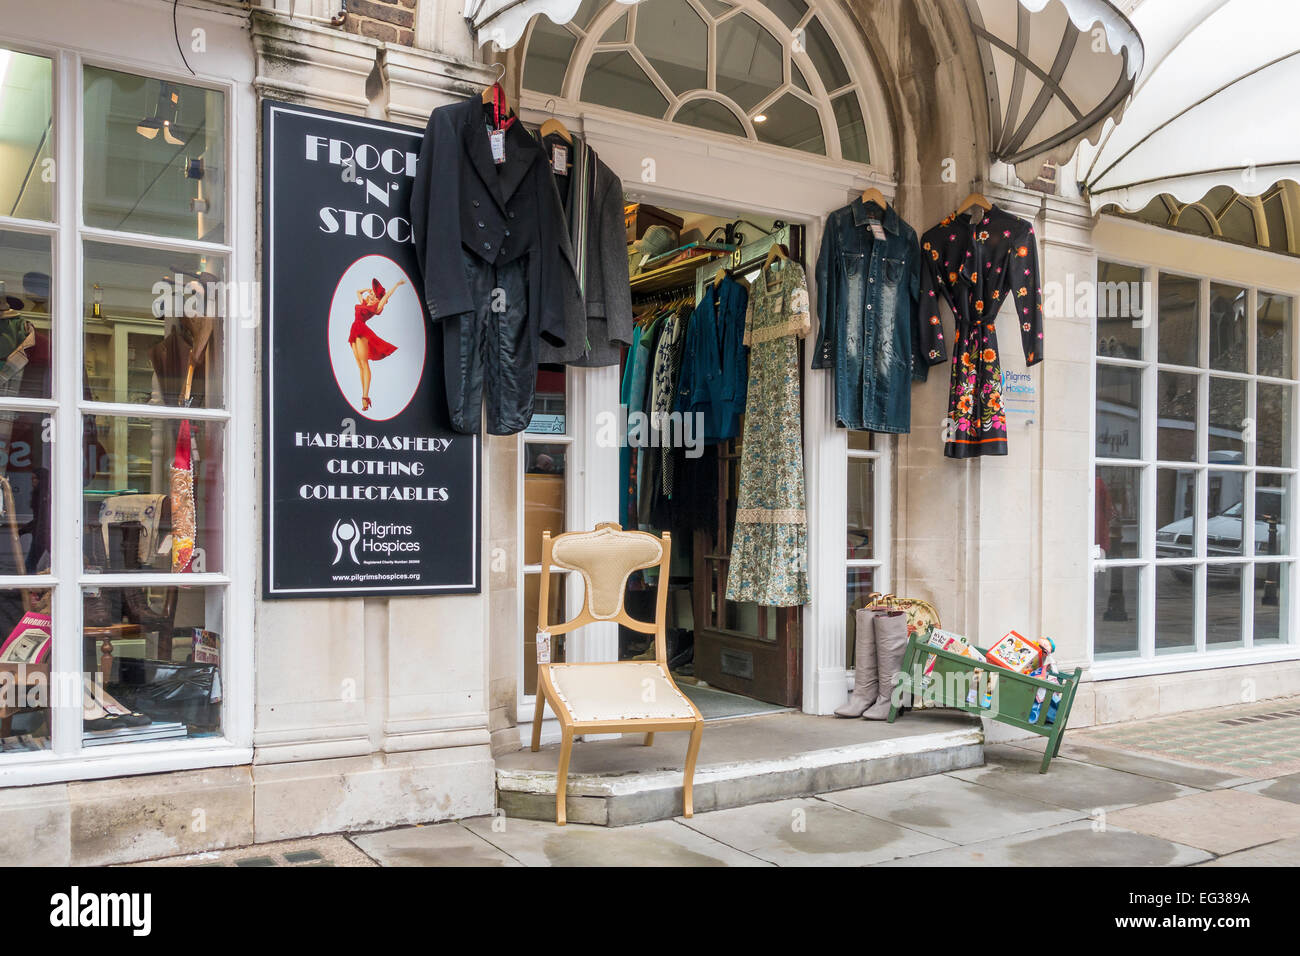 Hospice Charity Shop Clothes Collectables Haberdashery Burgate Canterbury UK - Stock Image